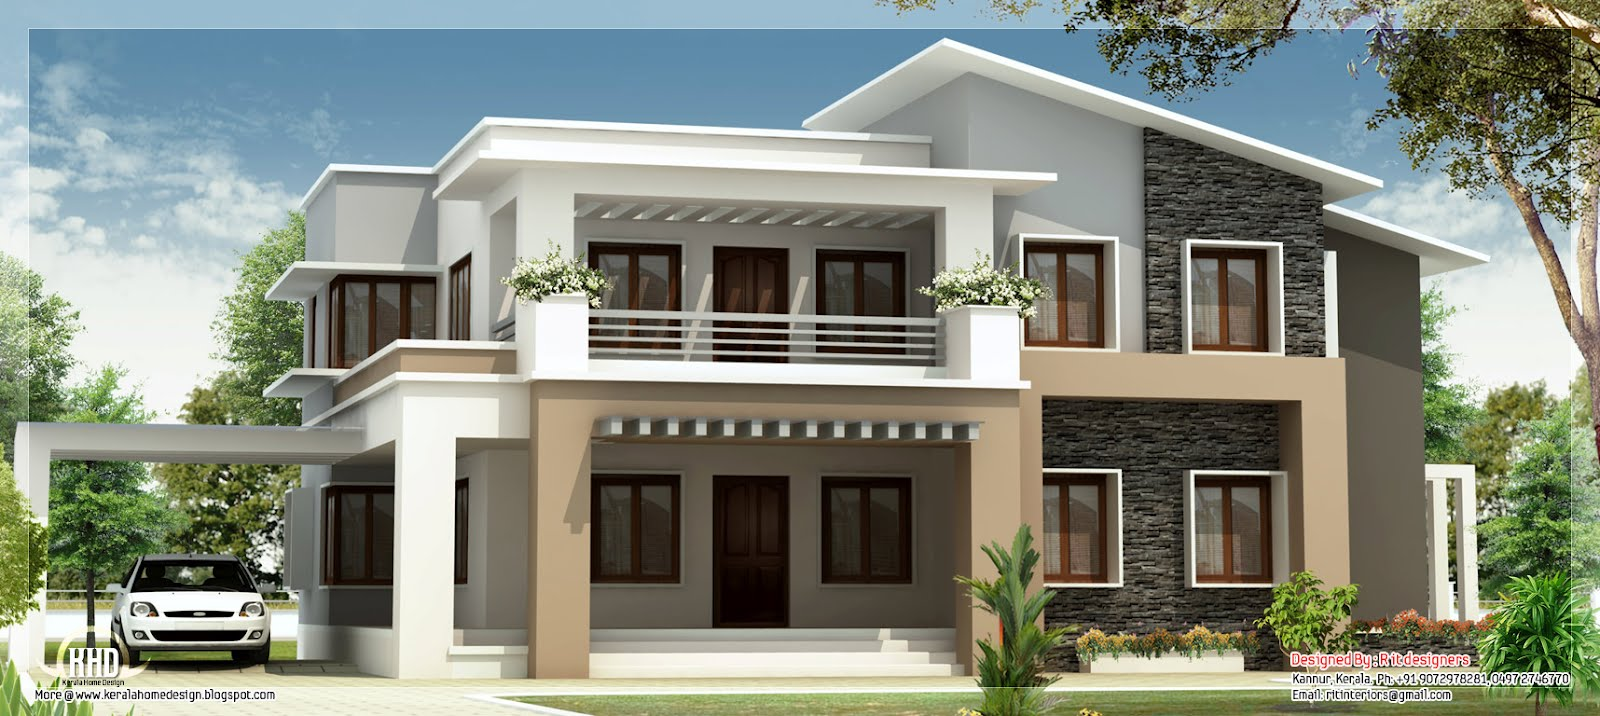 Modern Mix Double Floor Home Design Kerala Home Design: modern double storey house plans